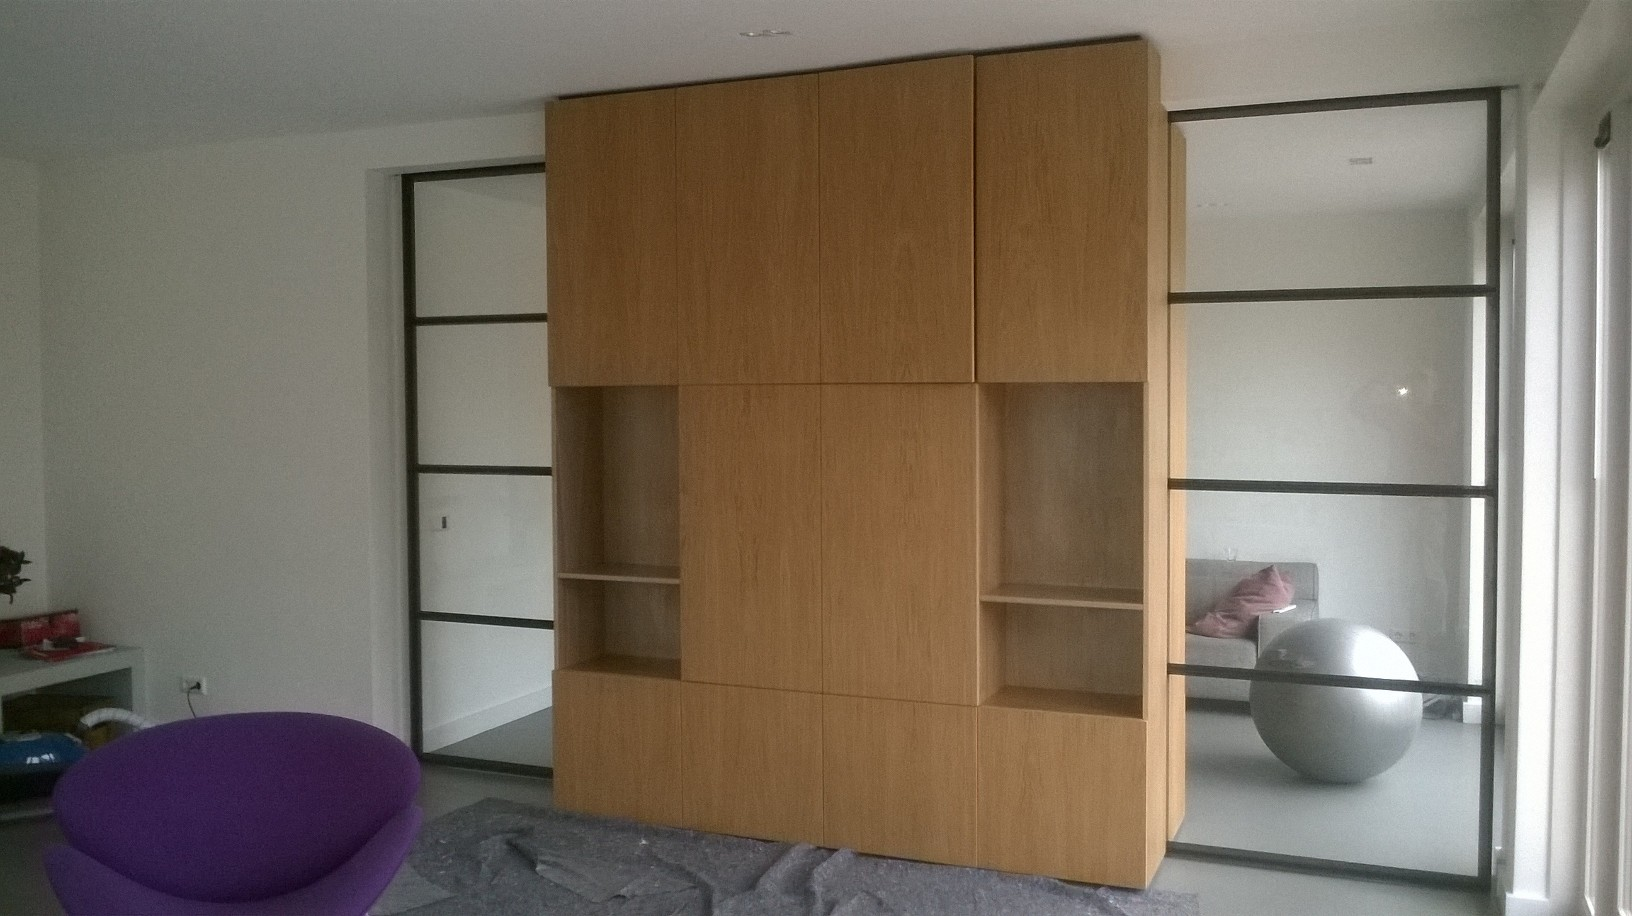 Room Divider Kast Roomdivider Kast Perfect Karton Materiaal Roomdivider With